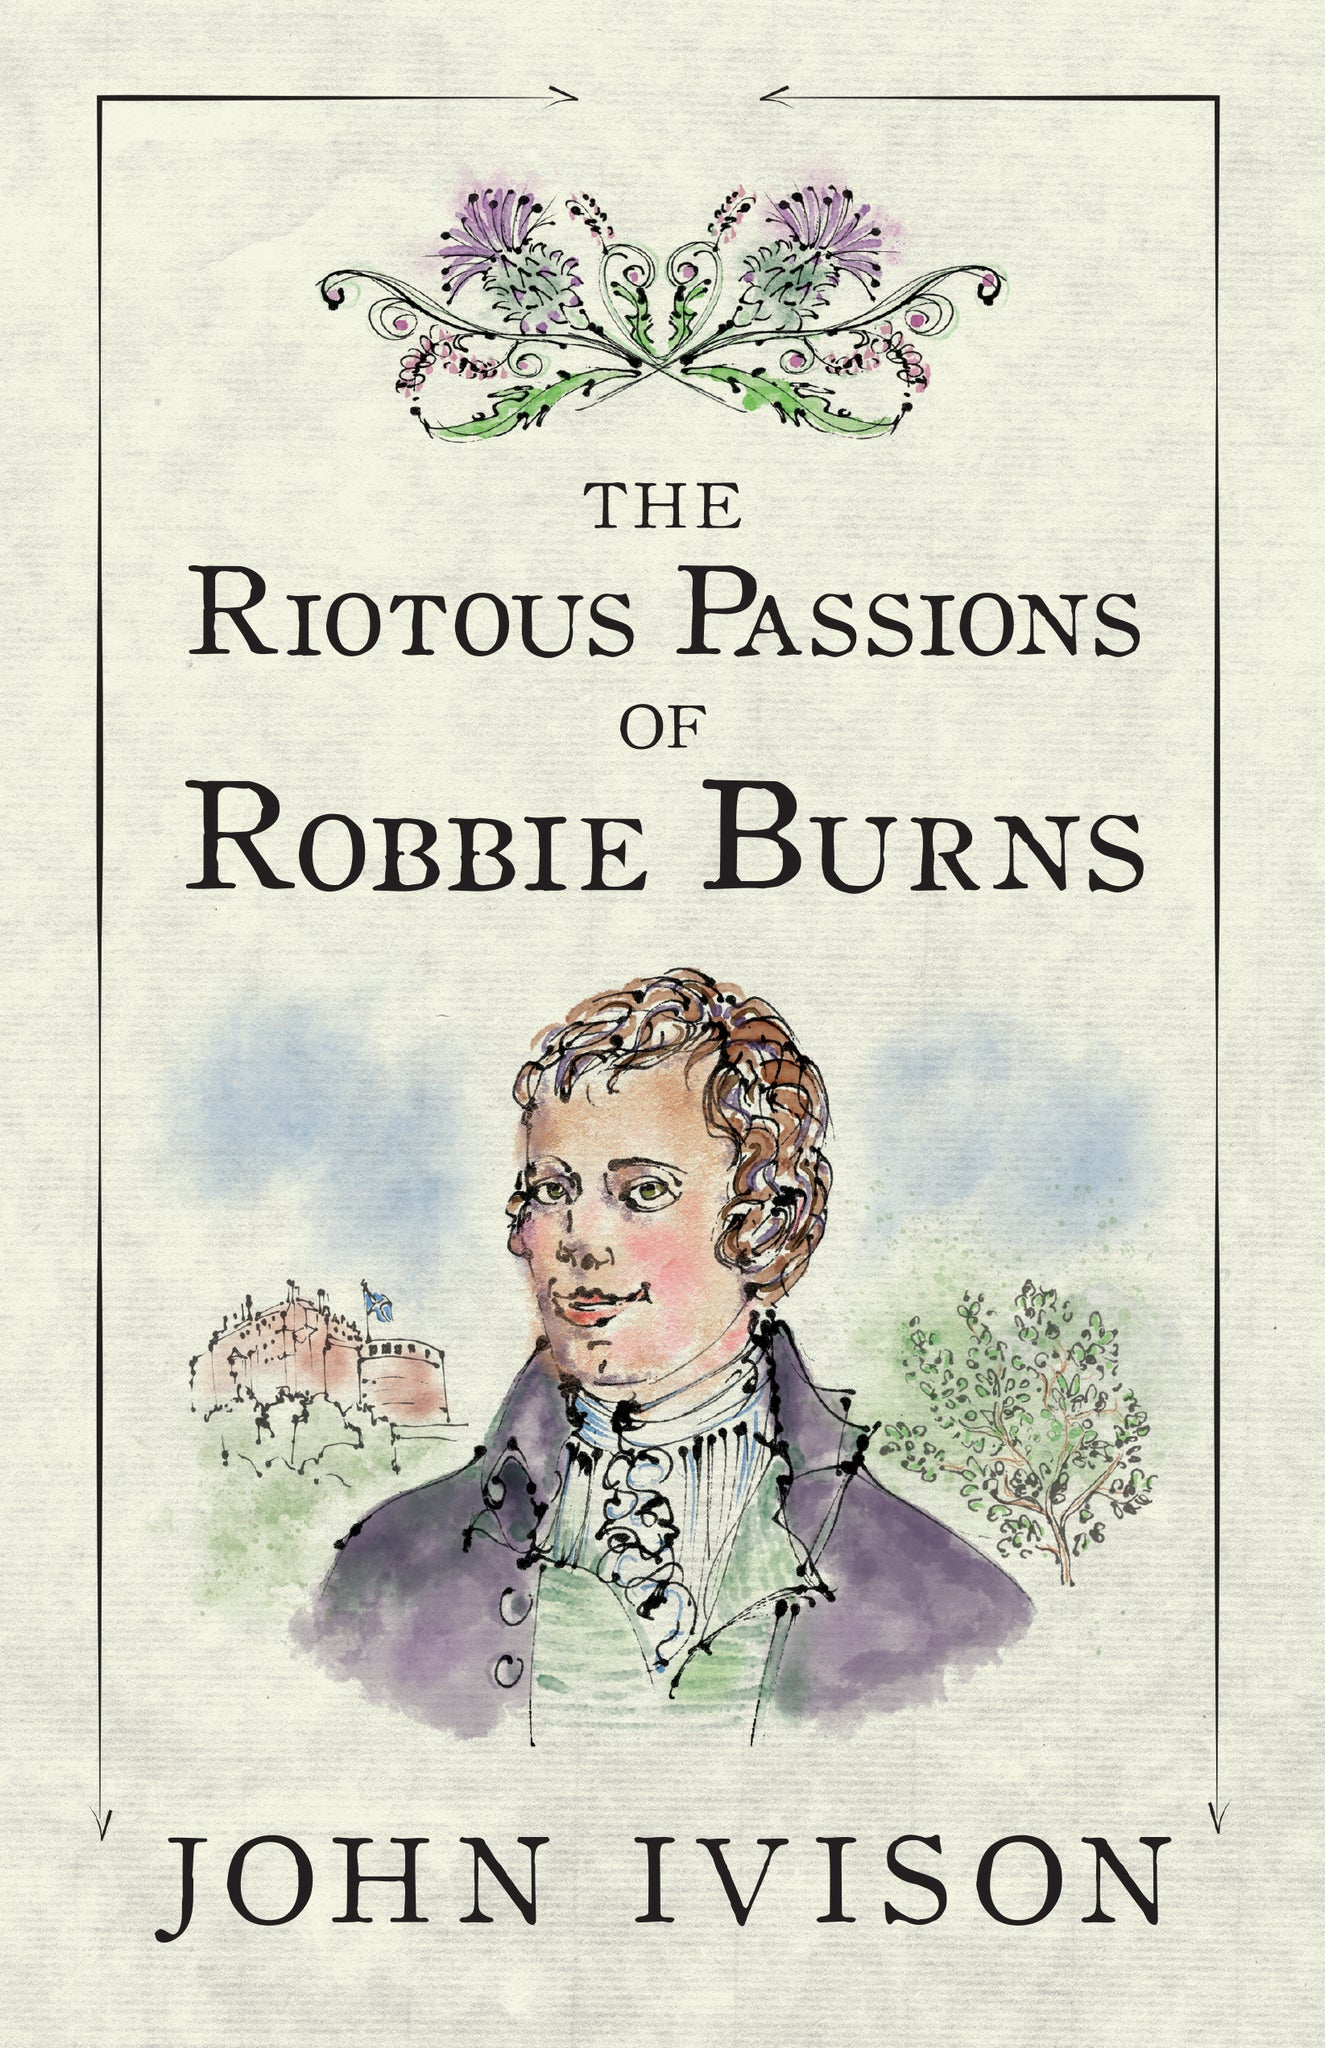 The Riotous Passions of Robbie Burns by John Ivison (Print Book)